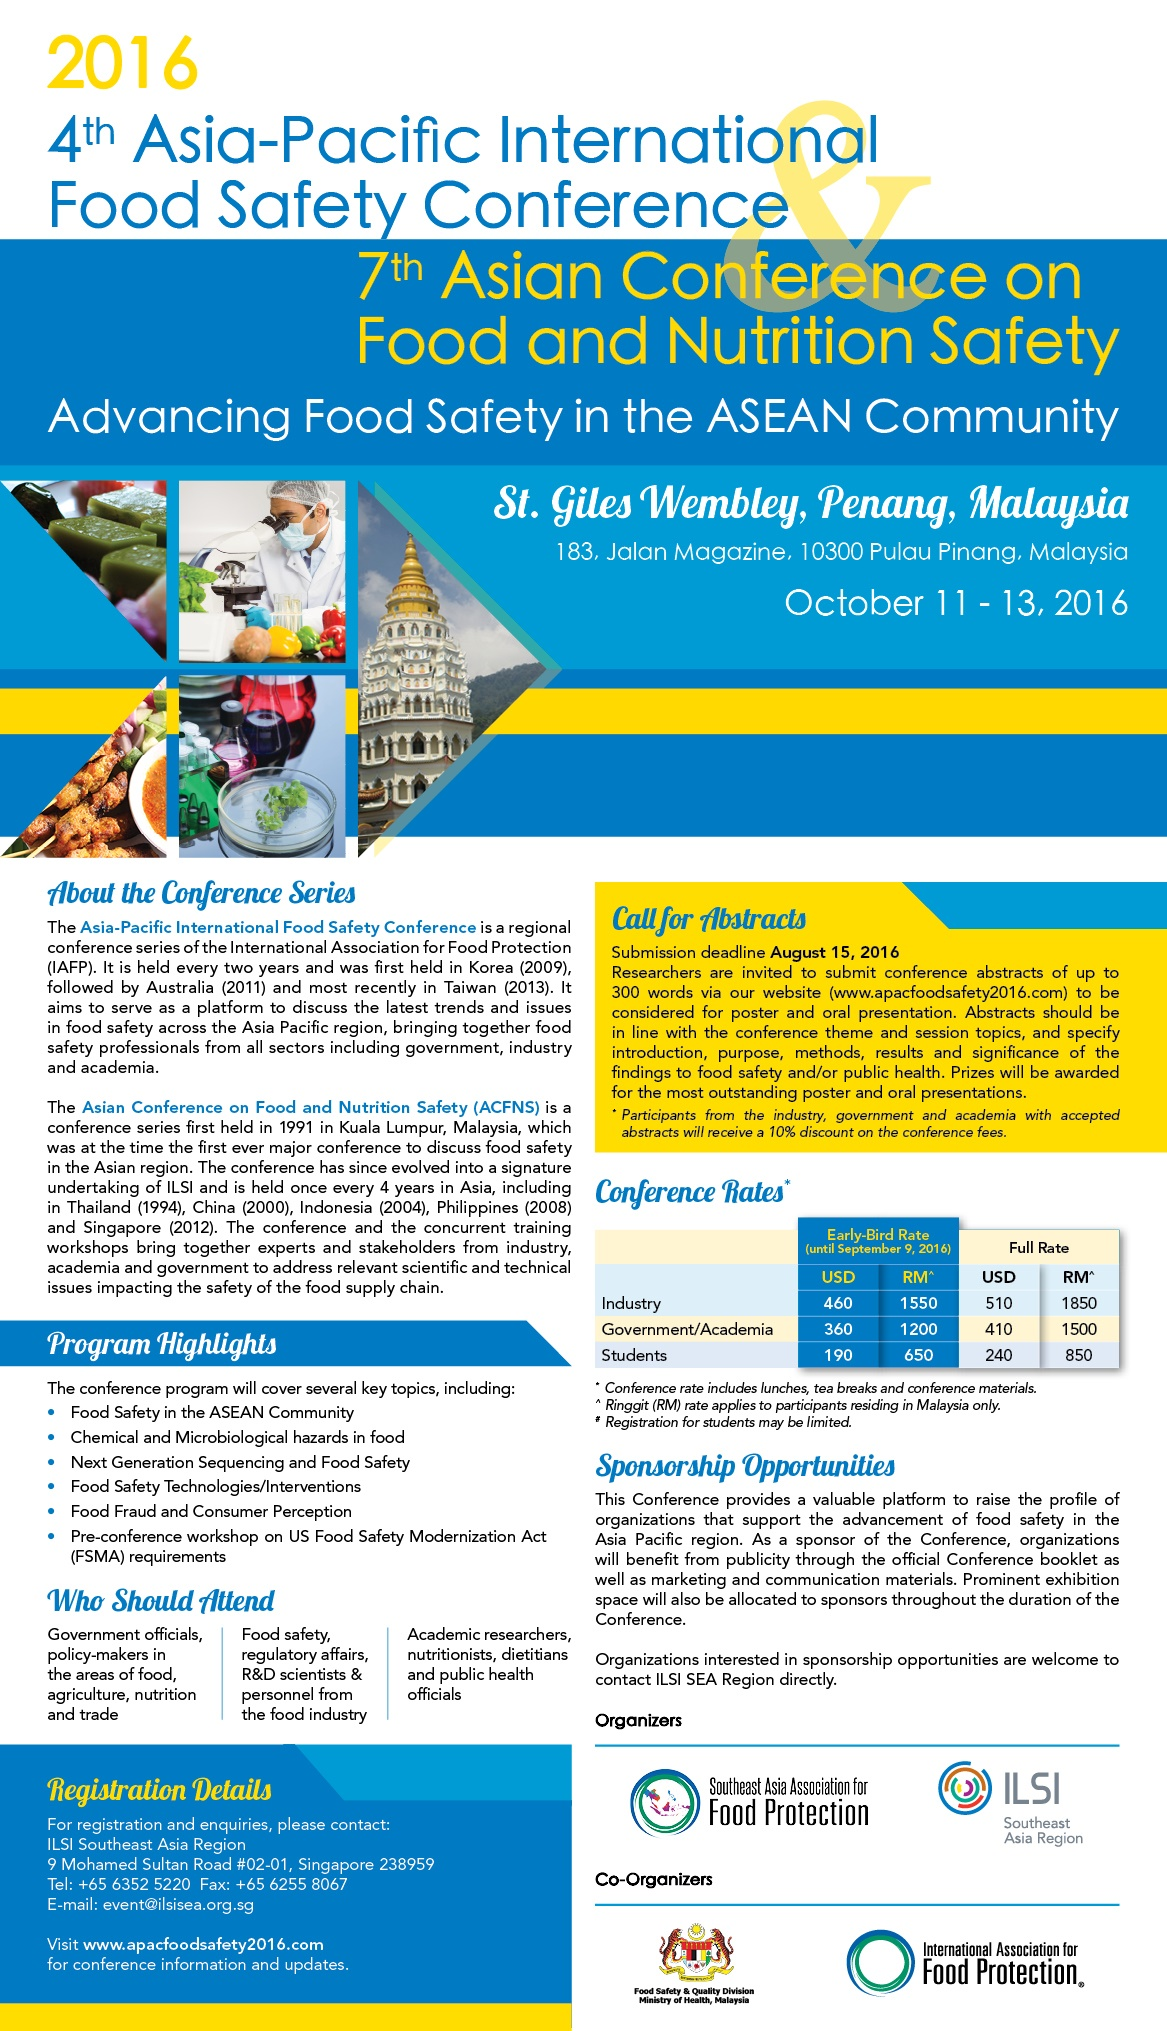 IL16100(b)_Food Safety Conf 2016_eFlyer_d7_120ppi